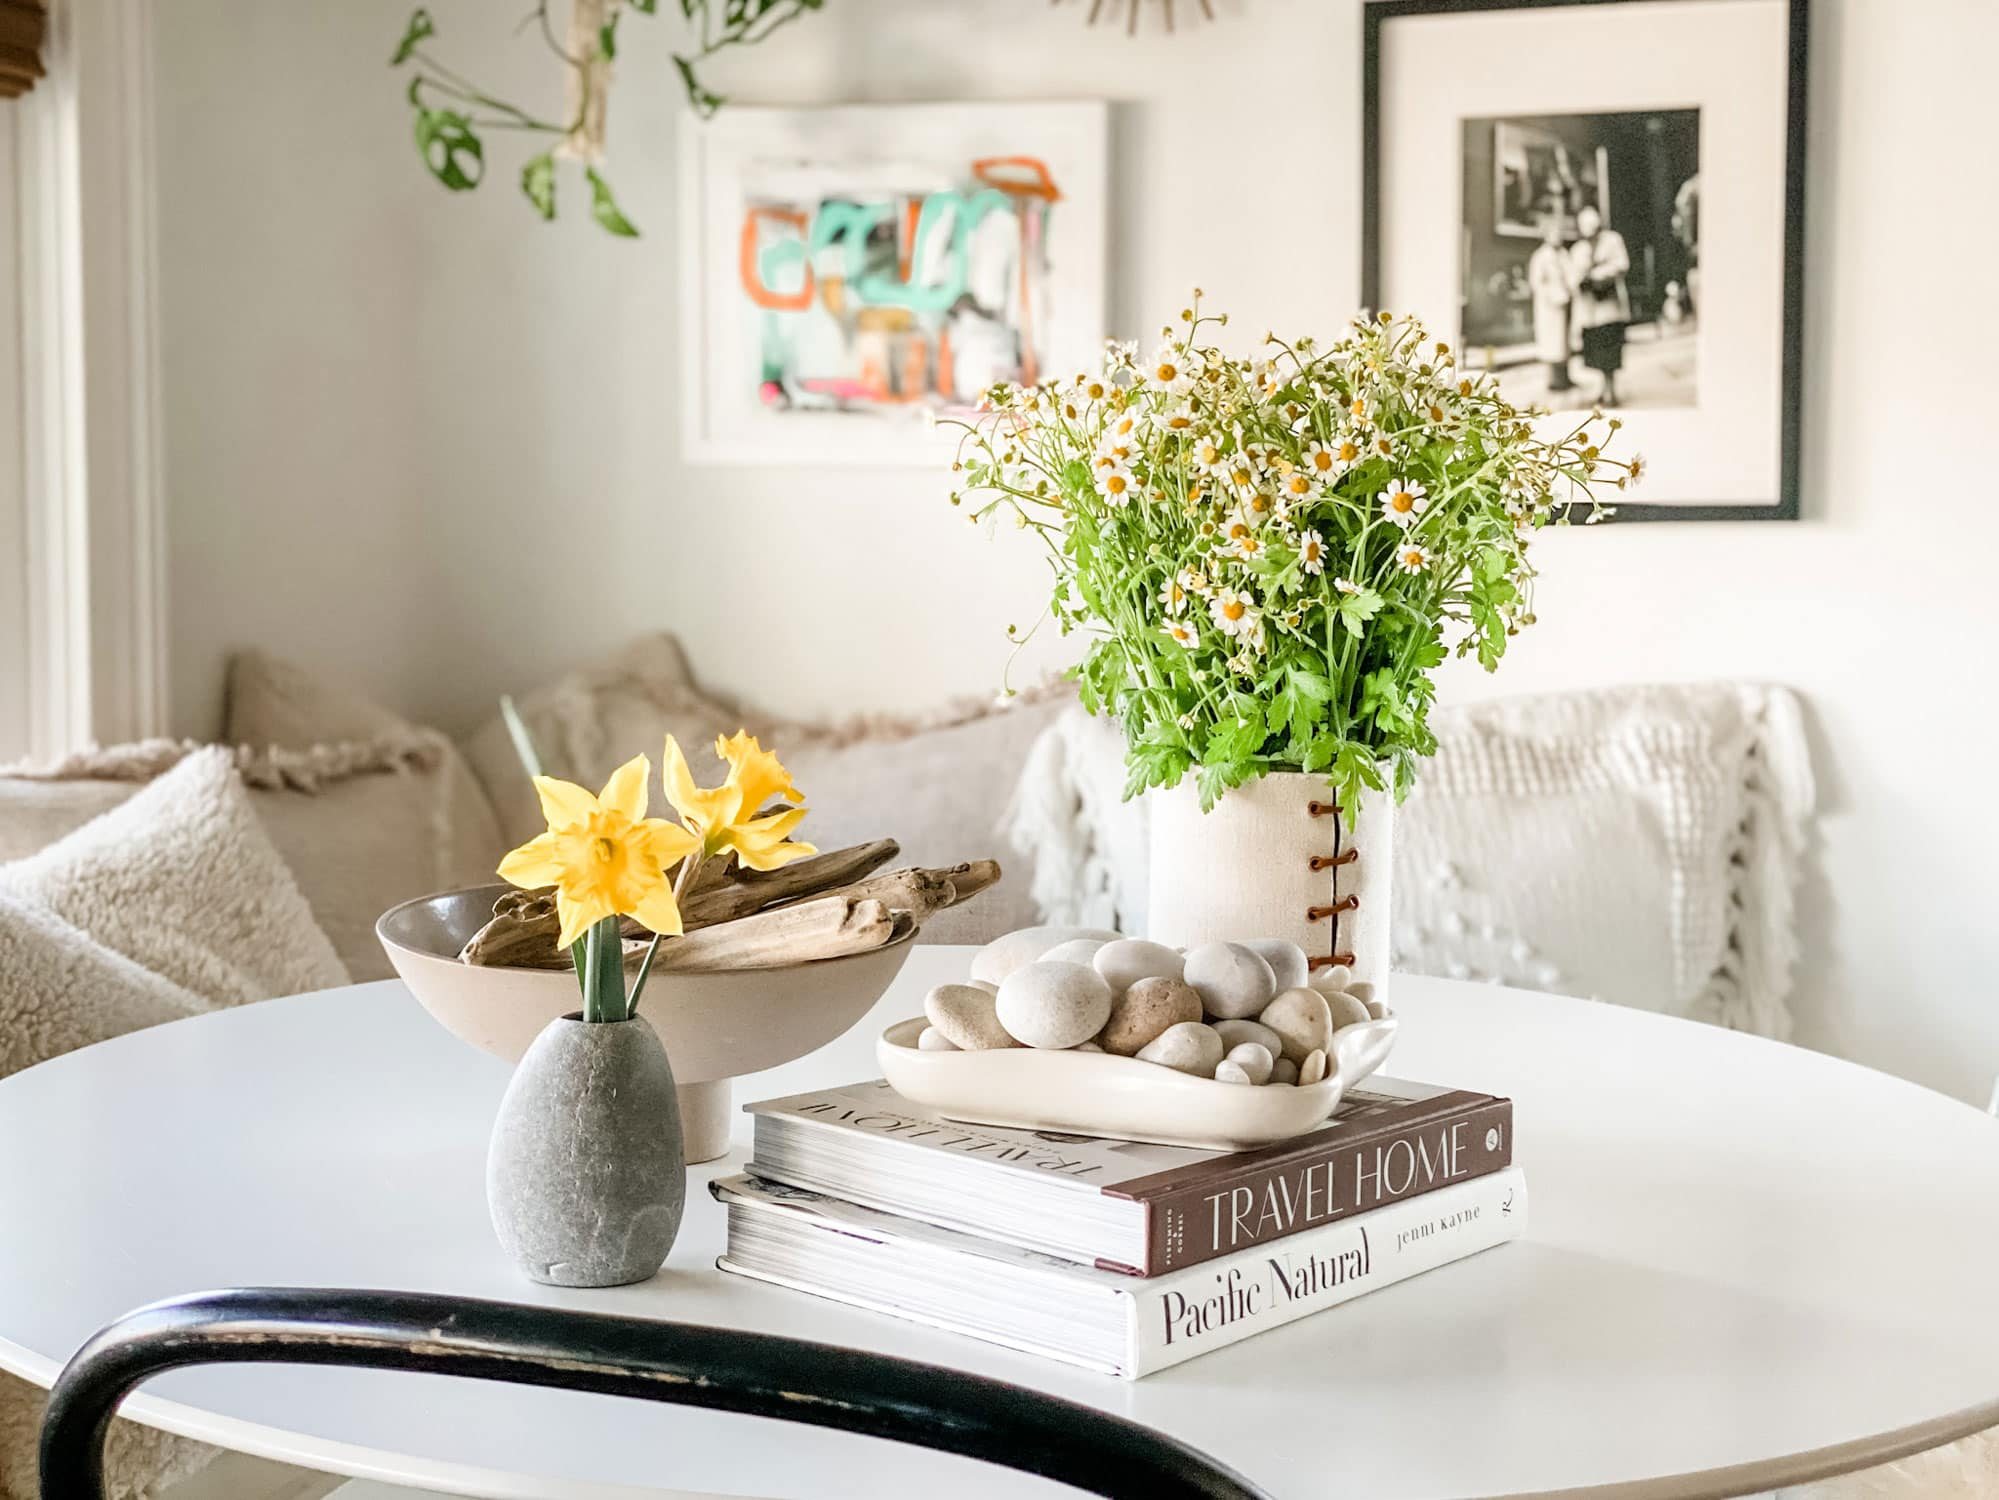 vase with chamomile, books and rocks/driftwood on white table